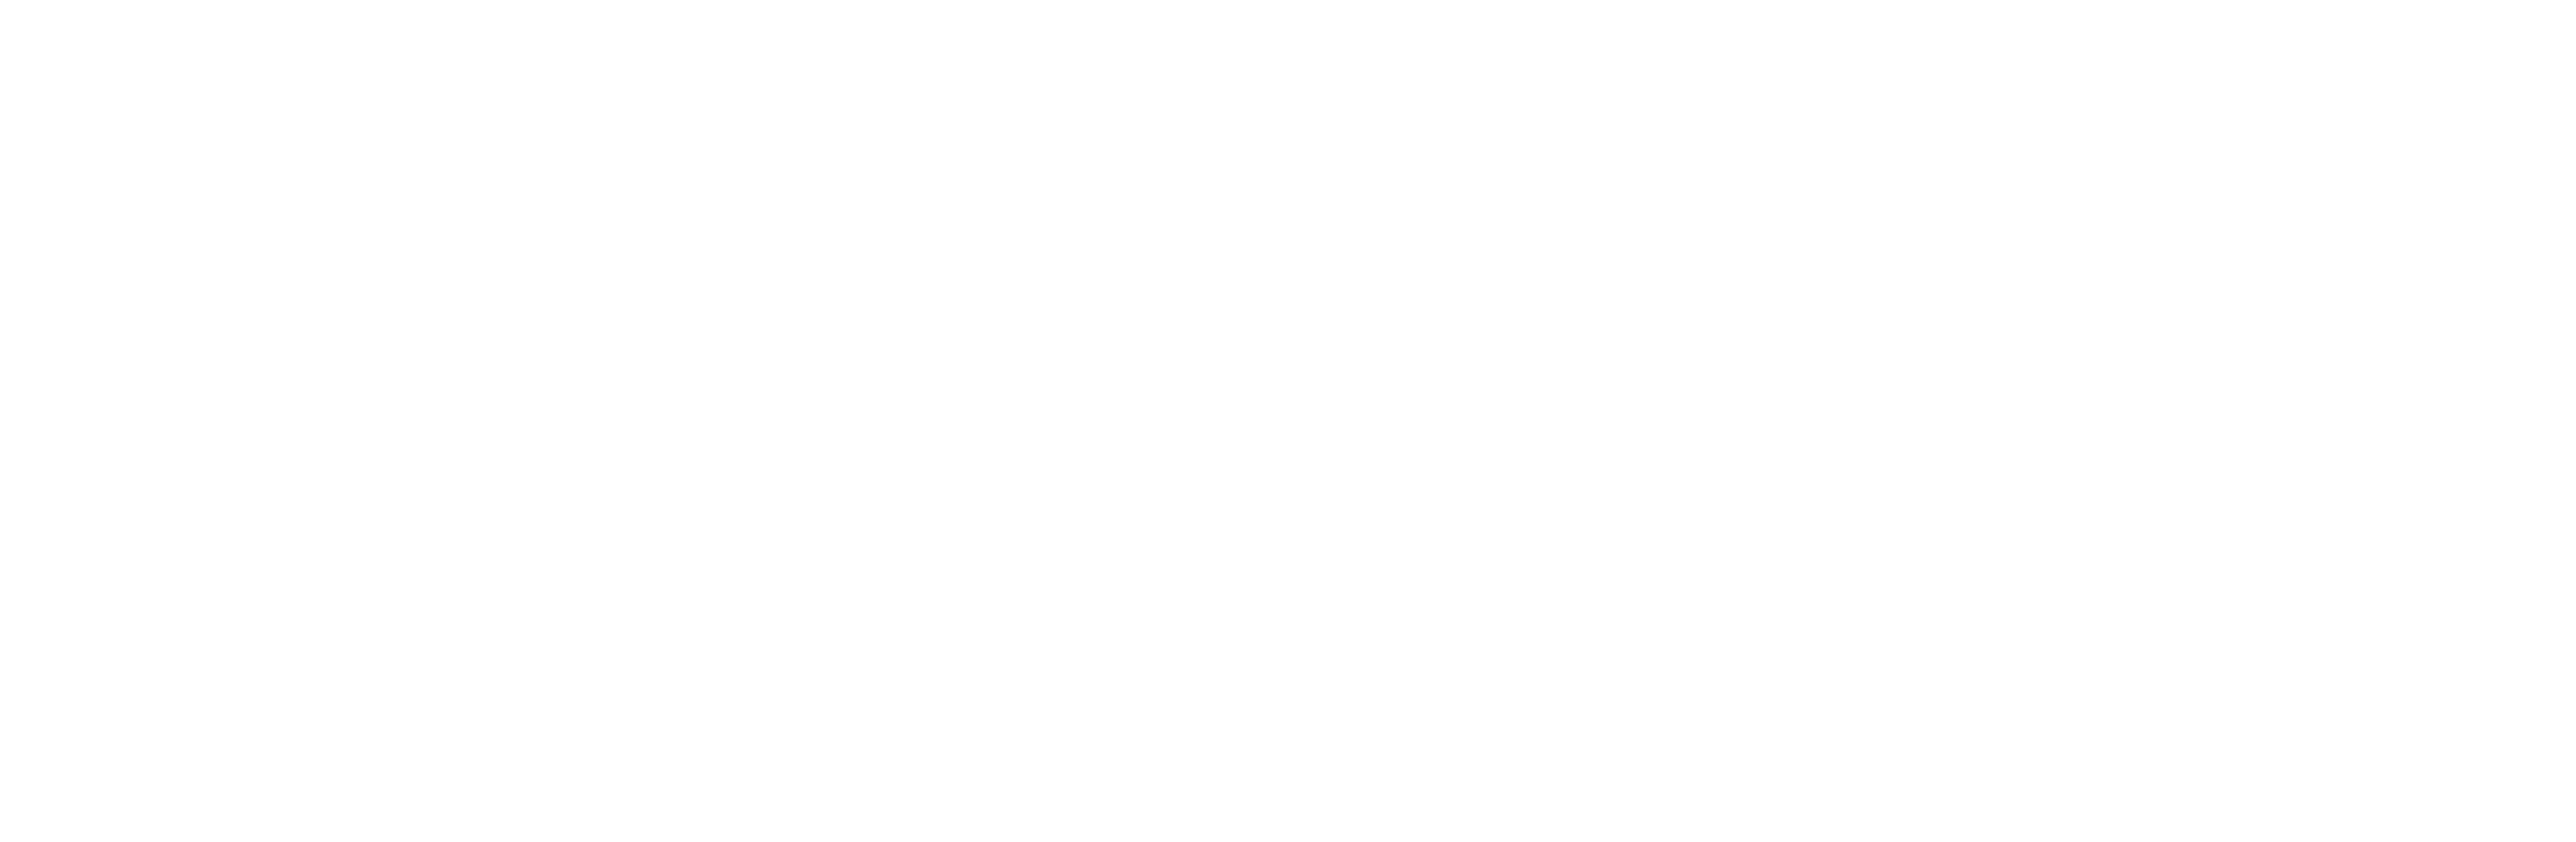 Chamberlain's Flower Shop - Flower Delivery in West Allis, WI